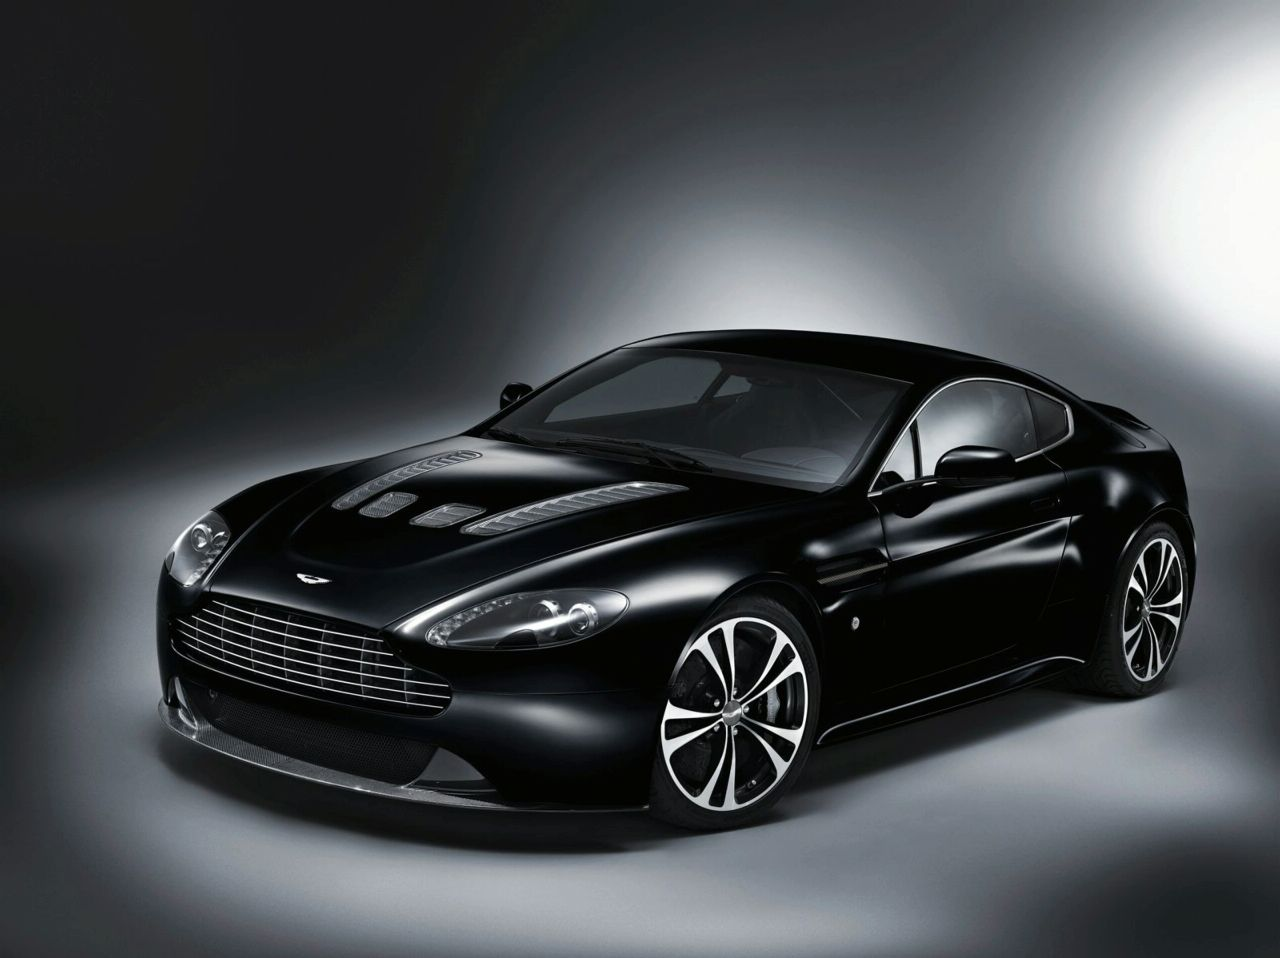 vantage – Automobile Wallpapers in, HD | Iphone | Android| Desktop 2 Wallpaper